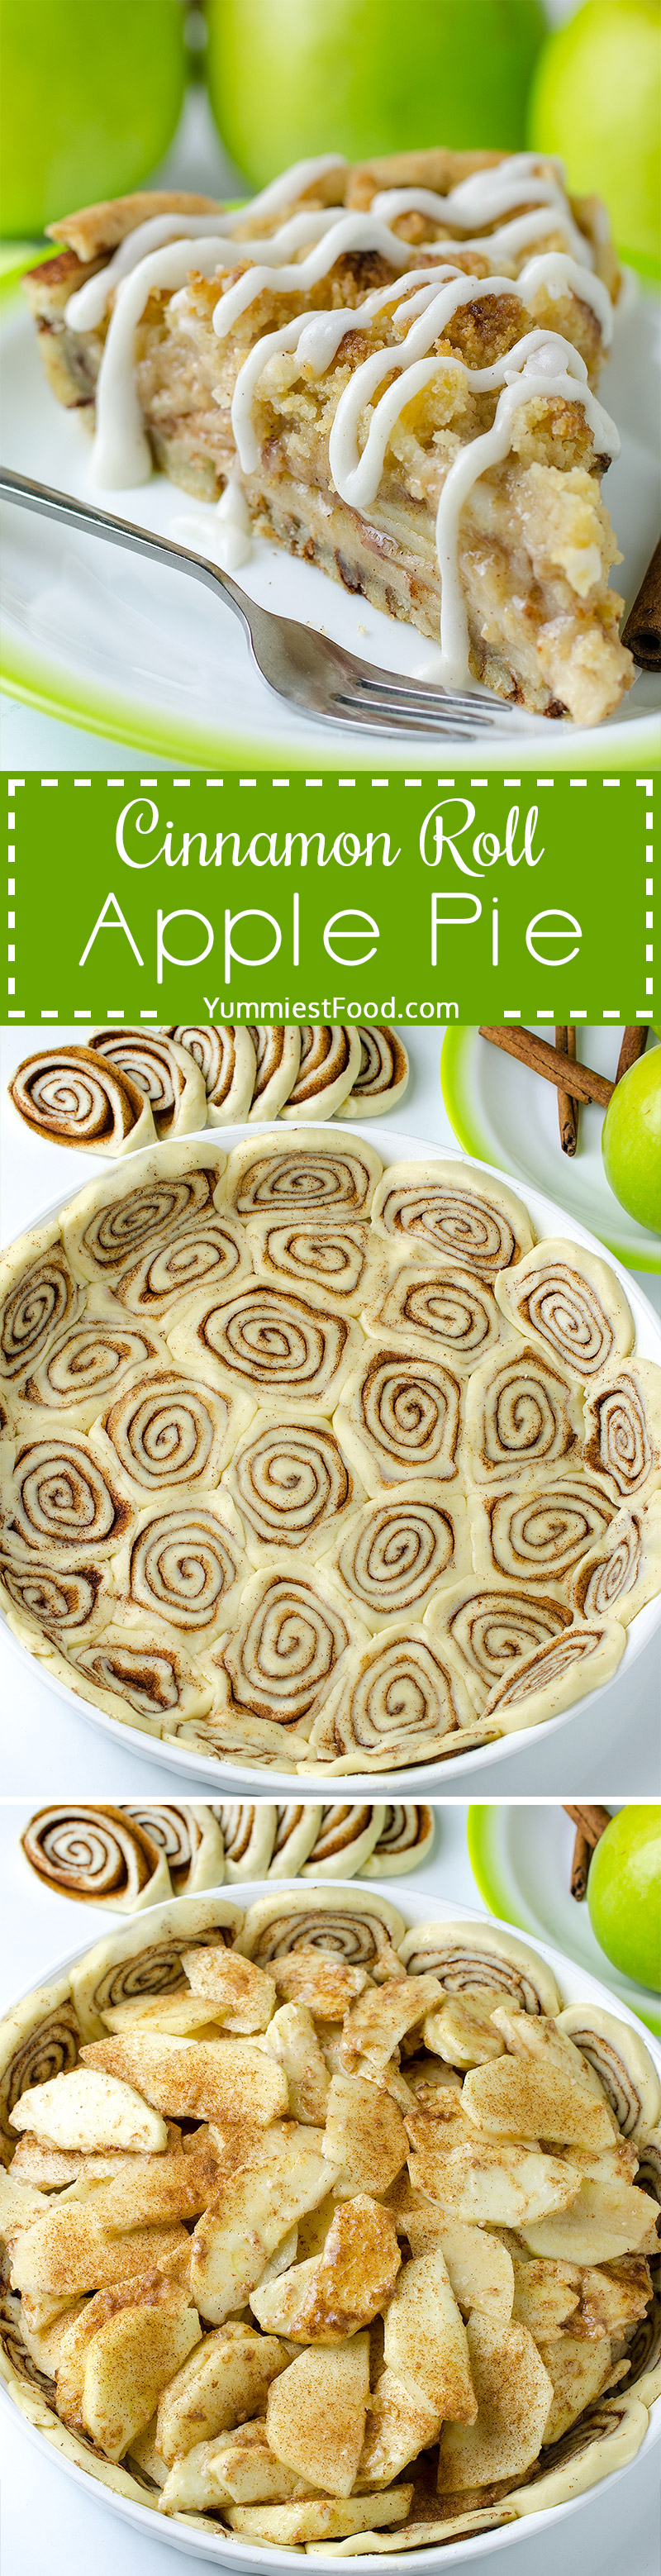 CINNAMON ROLL APPLE PIE - is perfect Thanksgiving treat. Combo of classic apple pie and yummy cinnamon rolls